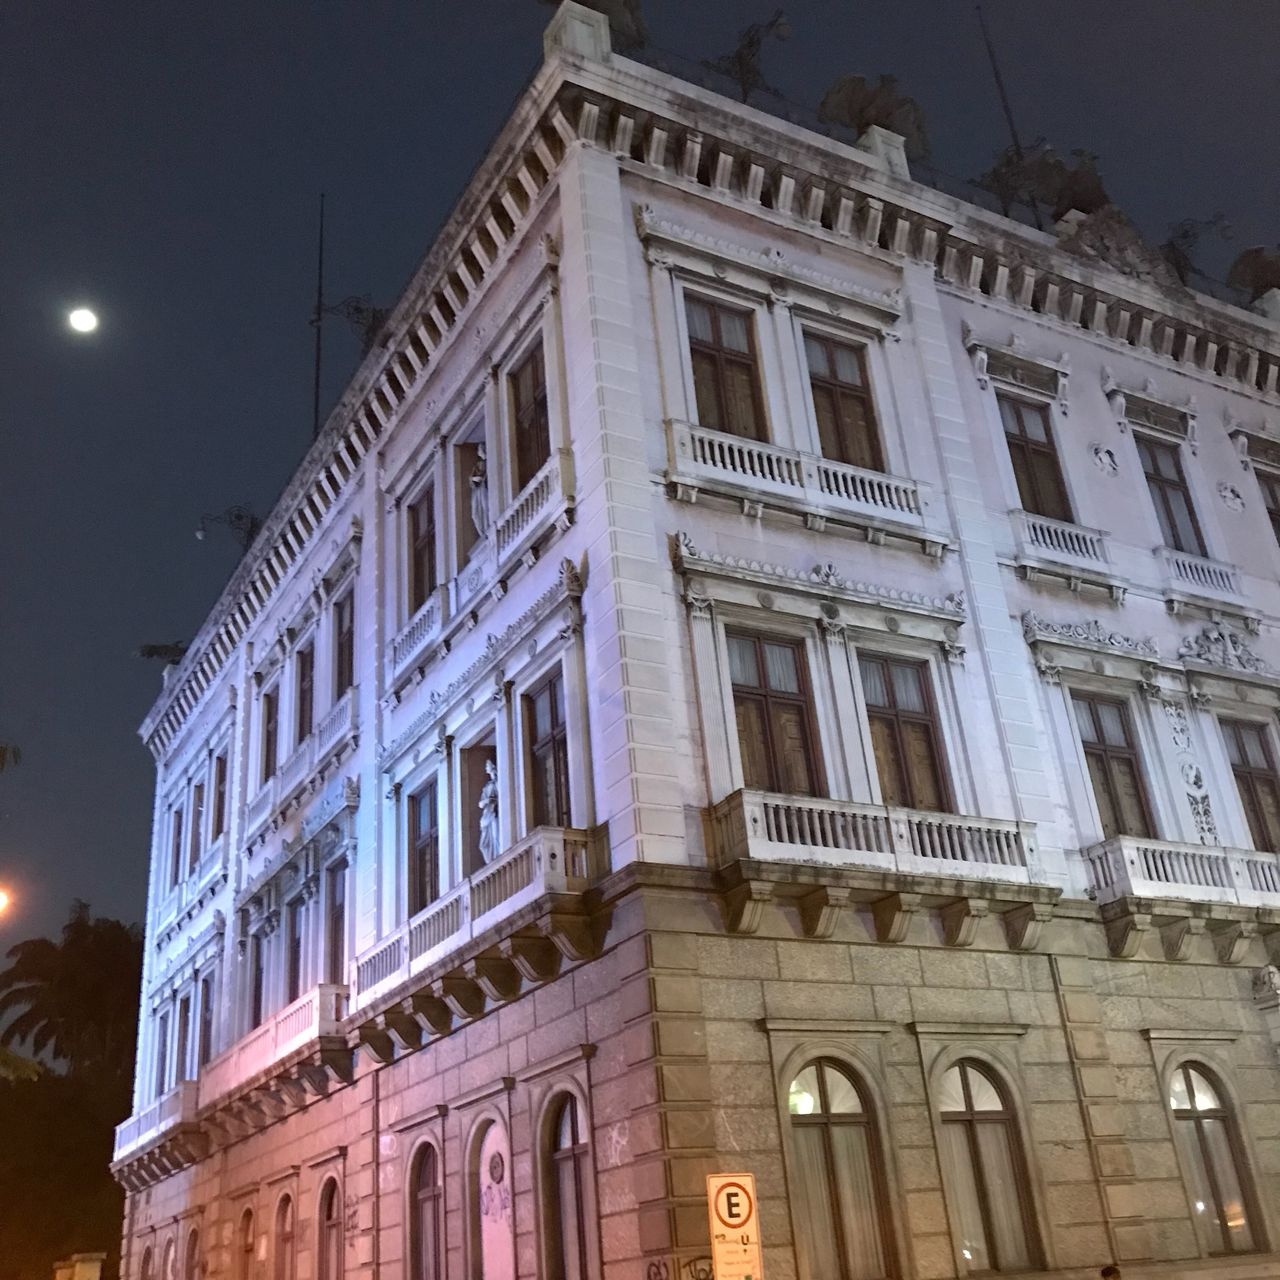 building exterior, architecture, built structure, low angle view, window, building, illuminated, night, no people, city, sky, outdoors, street, history, nature, lighting equipment, moon, arch, the past, street light